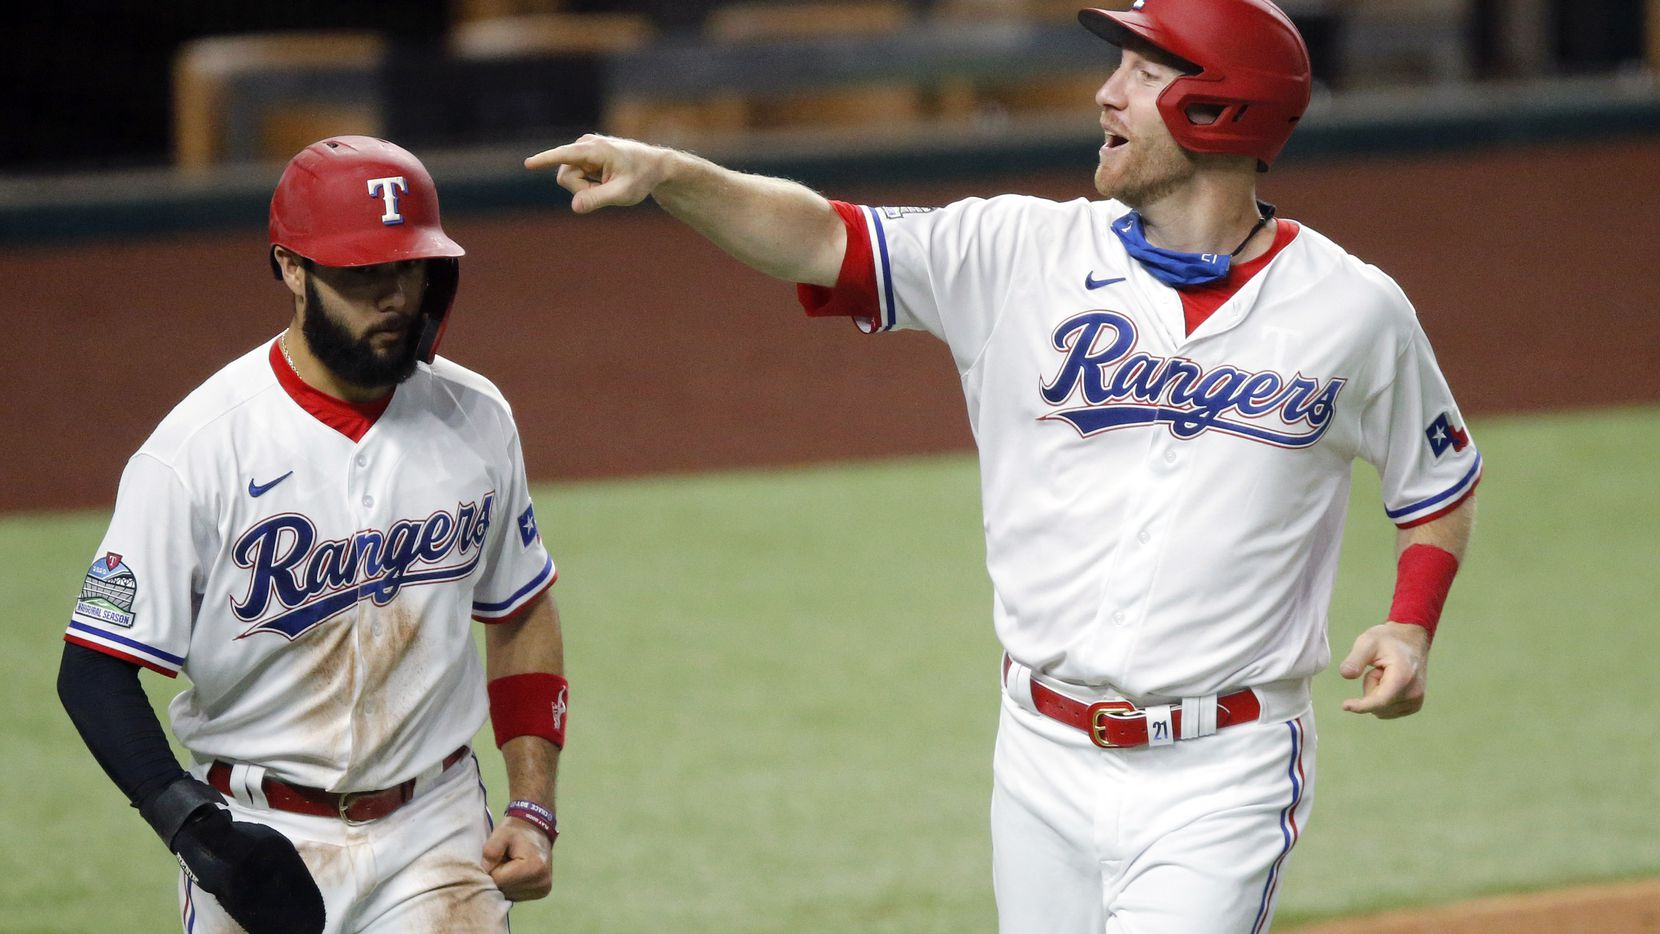 Texas Rangers Todd Frazier (right) scores with Isiah Kiner-Falefa on a single by Nick Solak in the first inning against the Seattle Mariners at Globe Life Field in Arlington, Tuesday, August 11, 2020. (Tom Fox/The Dallas Morning News)